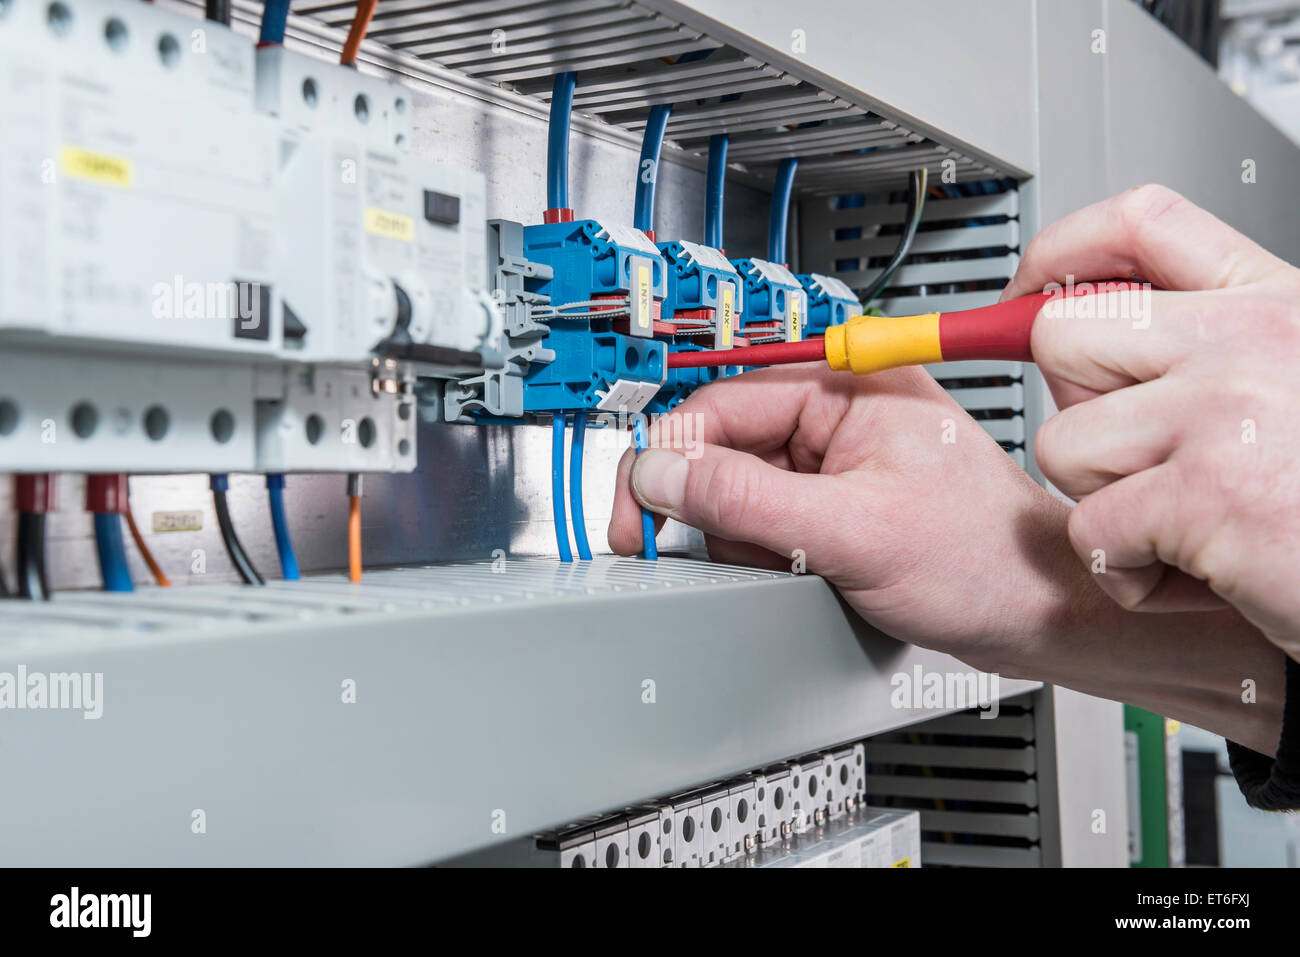 Close-up of electrician screwing cable in distribution fusebox, Munich, Bavaria, Germany - Stock Image